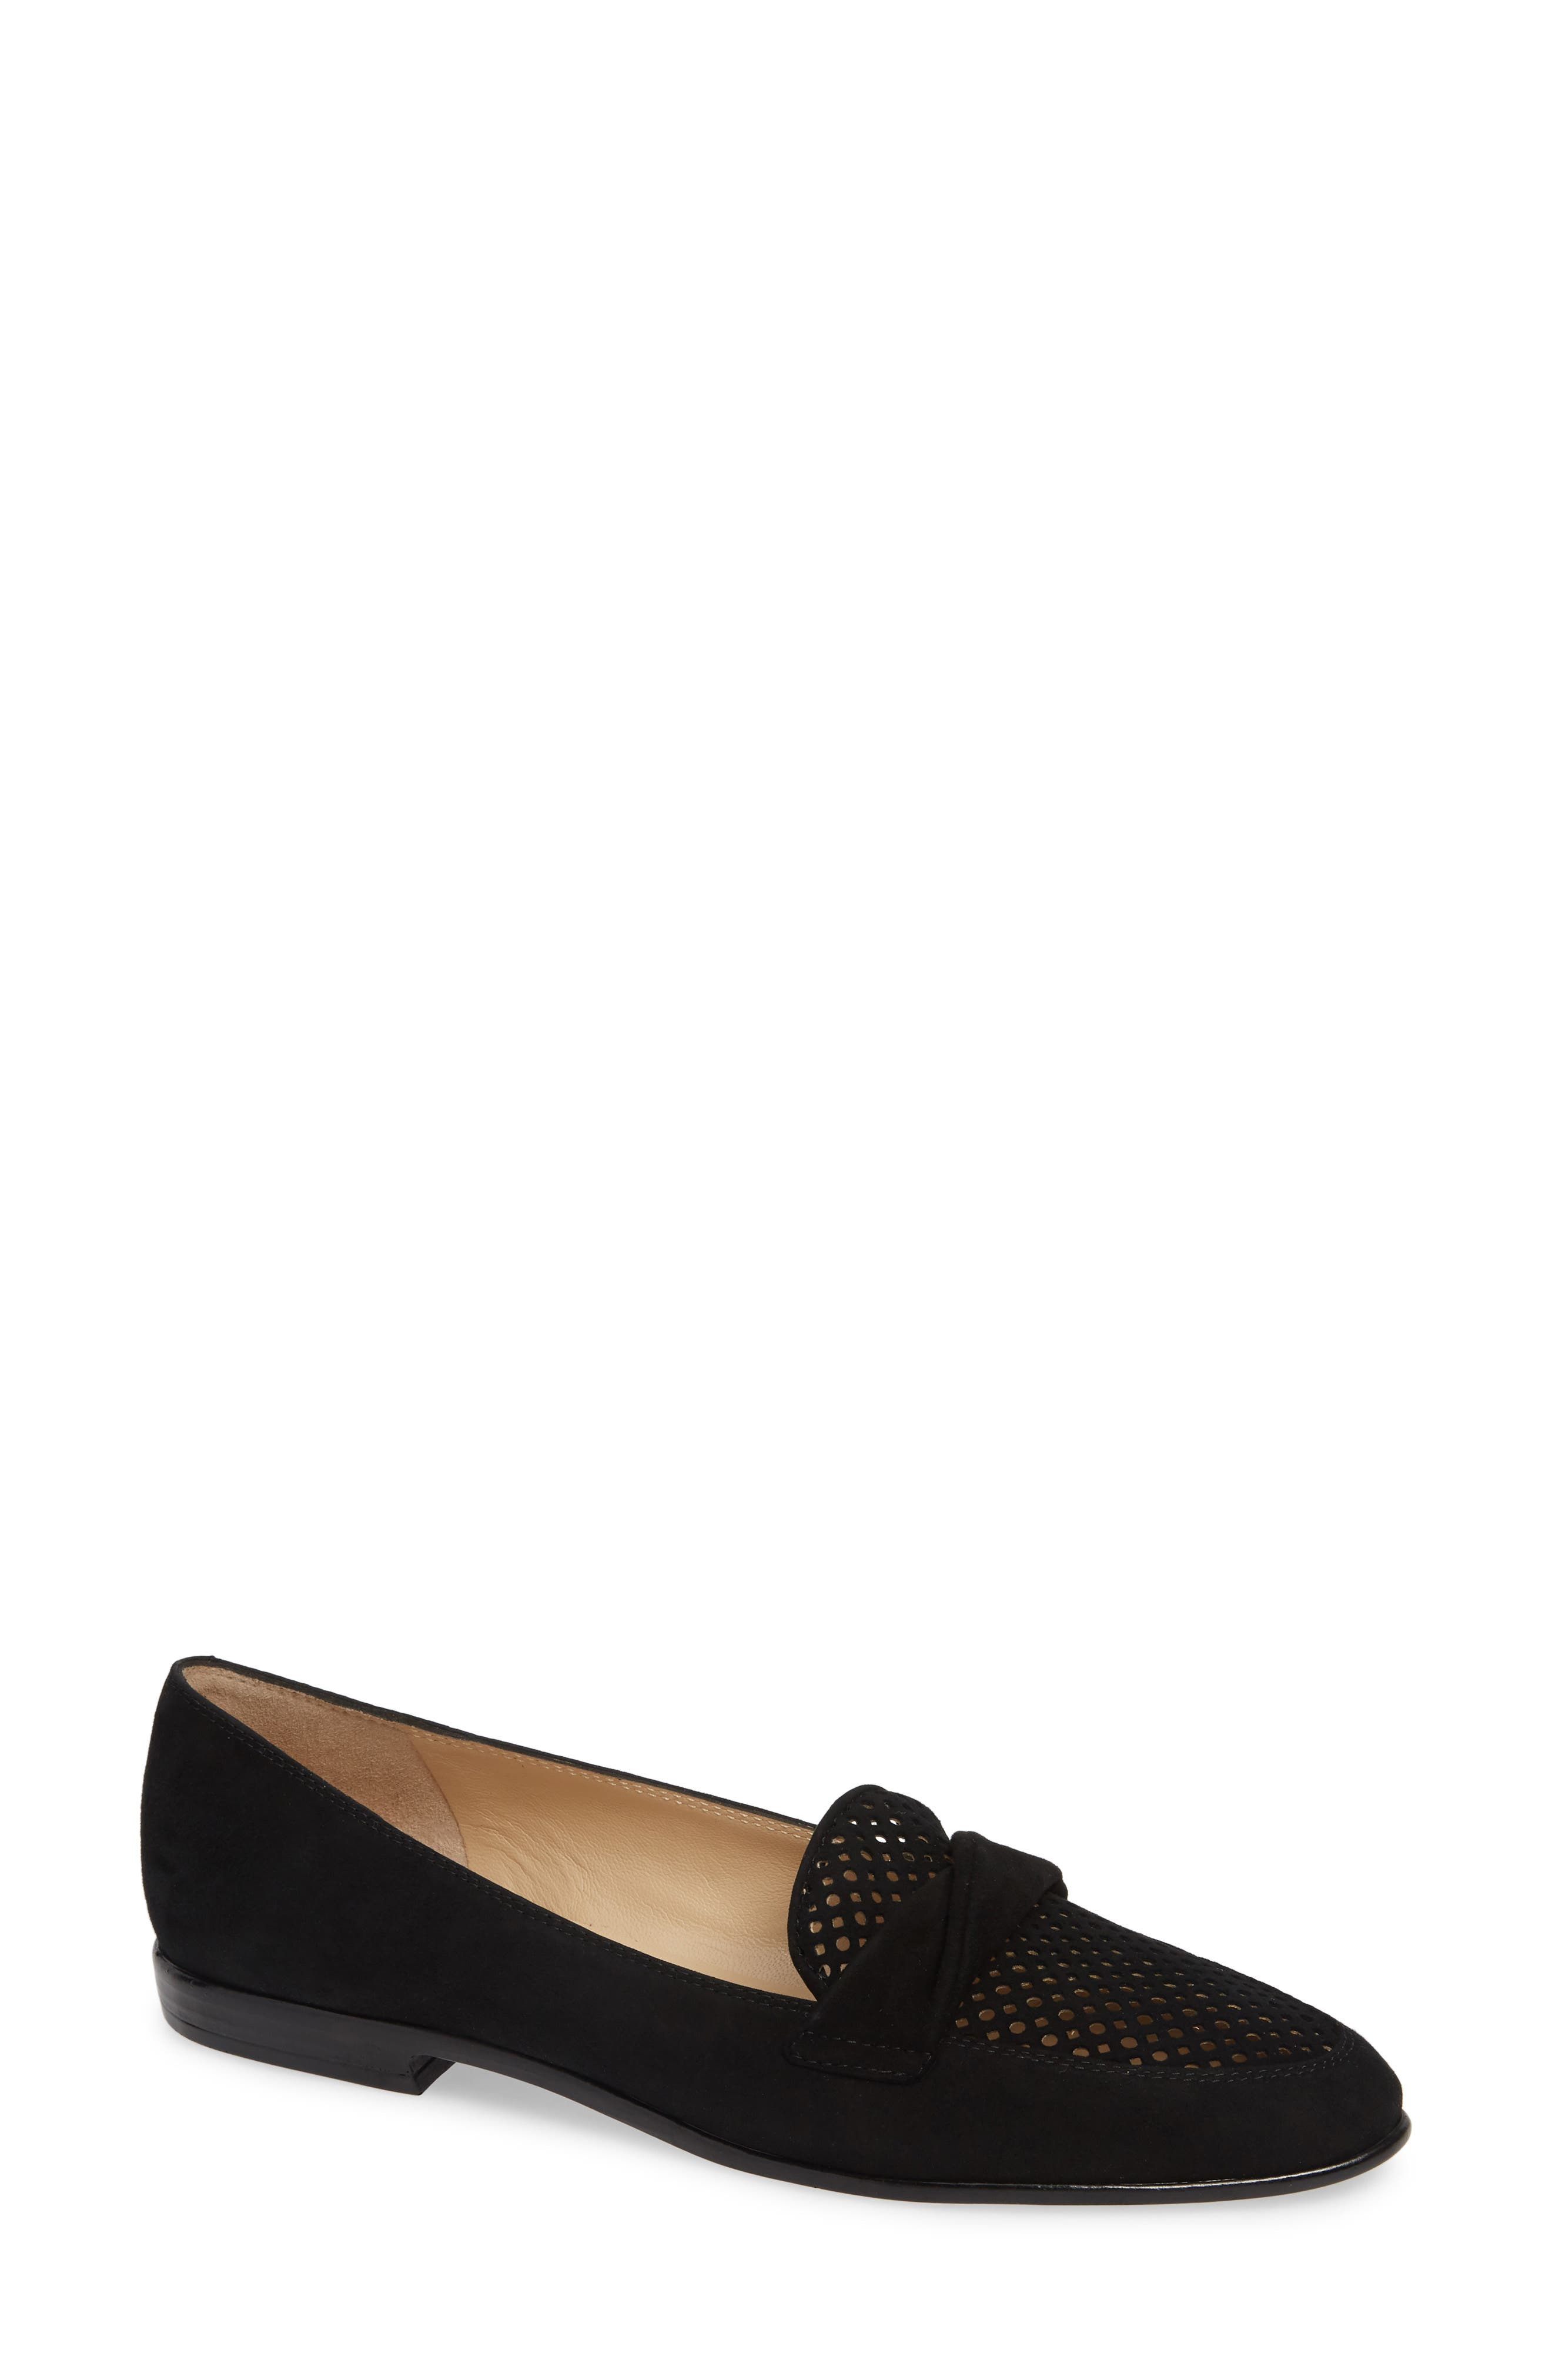 AMALFI BY RANGONI Osimo X Perforated Loafer, Main, color, BLACK SUEDE